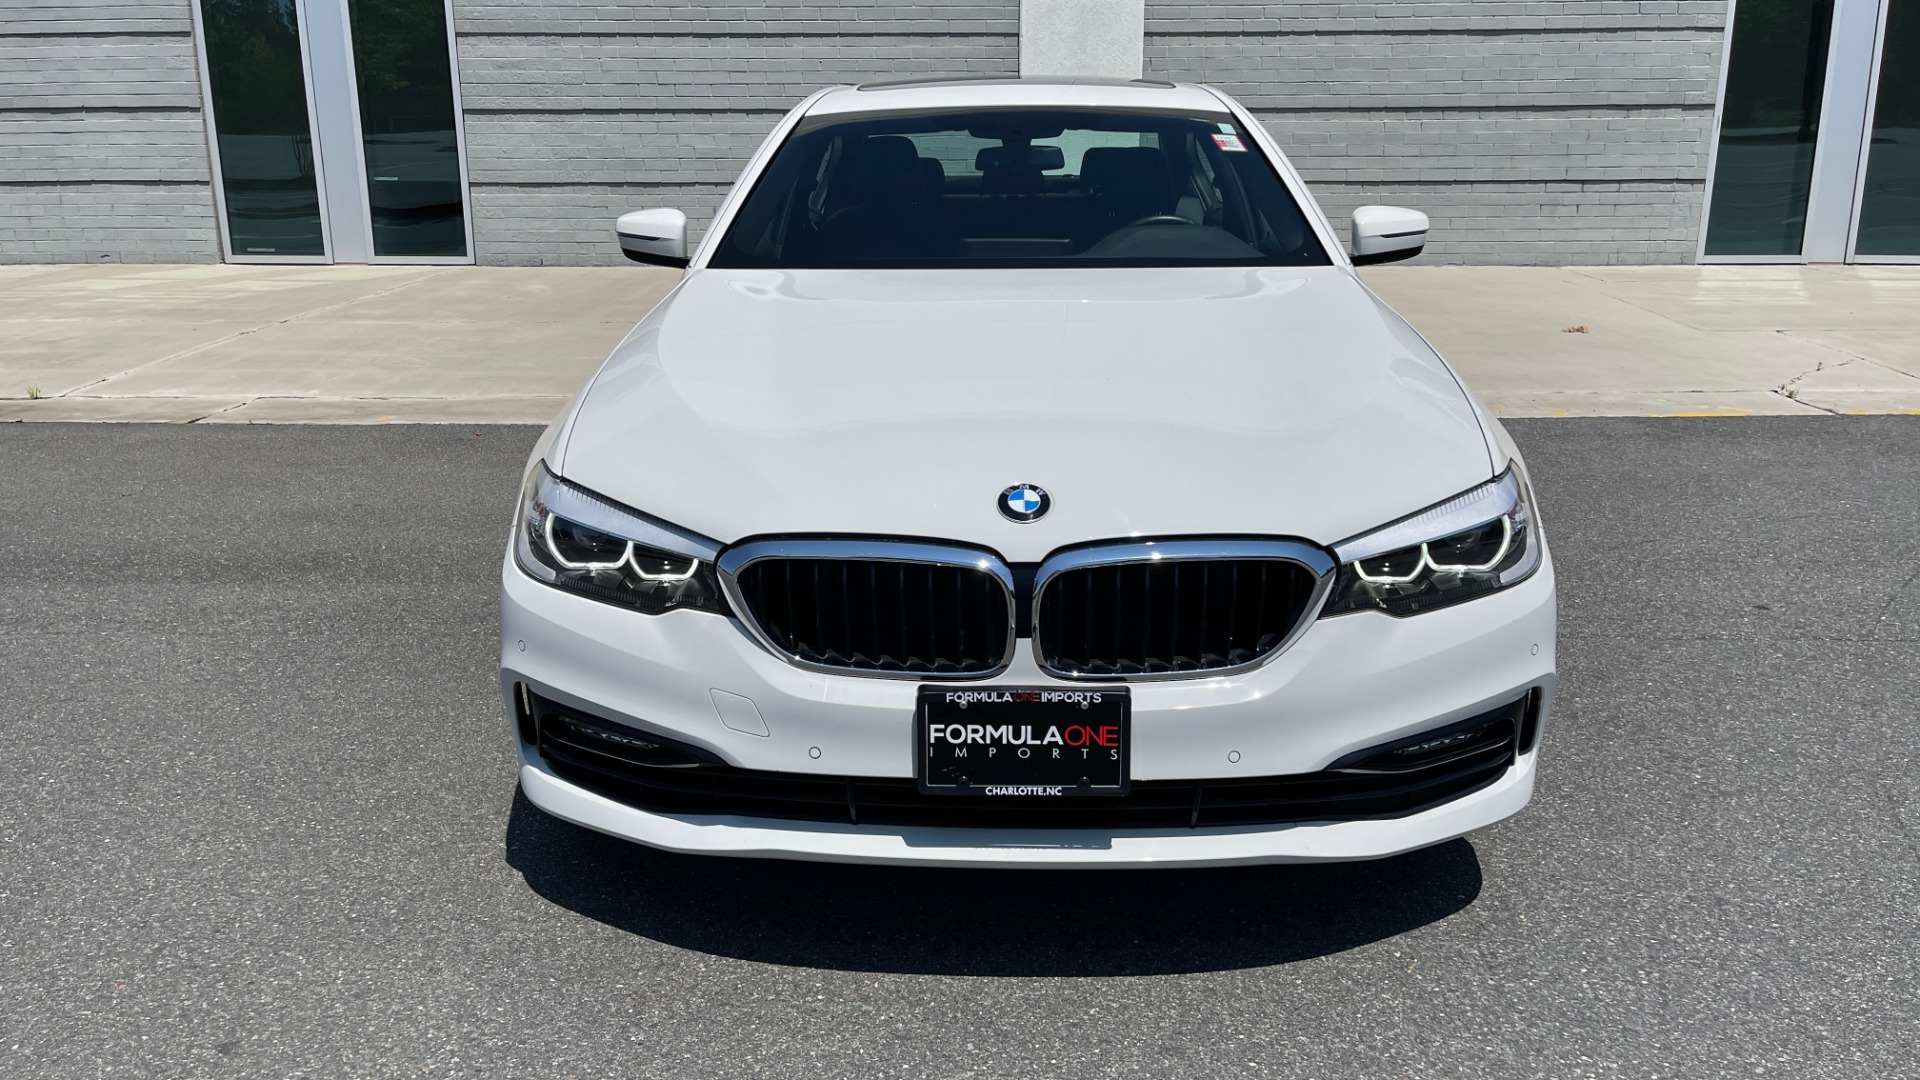 Used 2018 BMW 5 SERIES 540IXDRIVE PREMIUM / PARK ASSIST / KEYLESS ENTRY / SUNROOF / REARVIEW for sale $42,995 at Formula Imports in Charlotte NC 28227 10